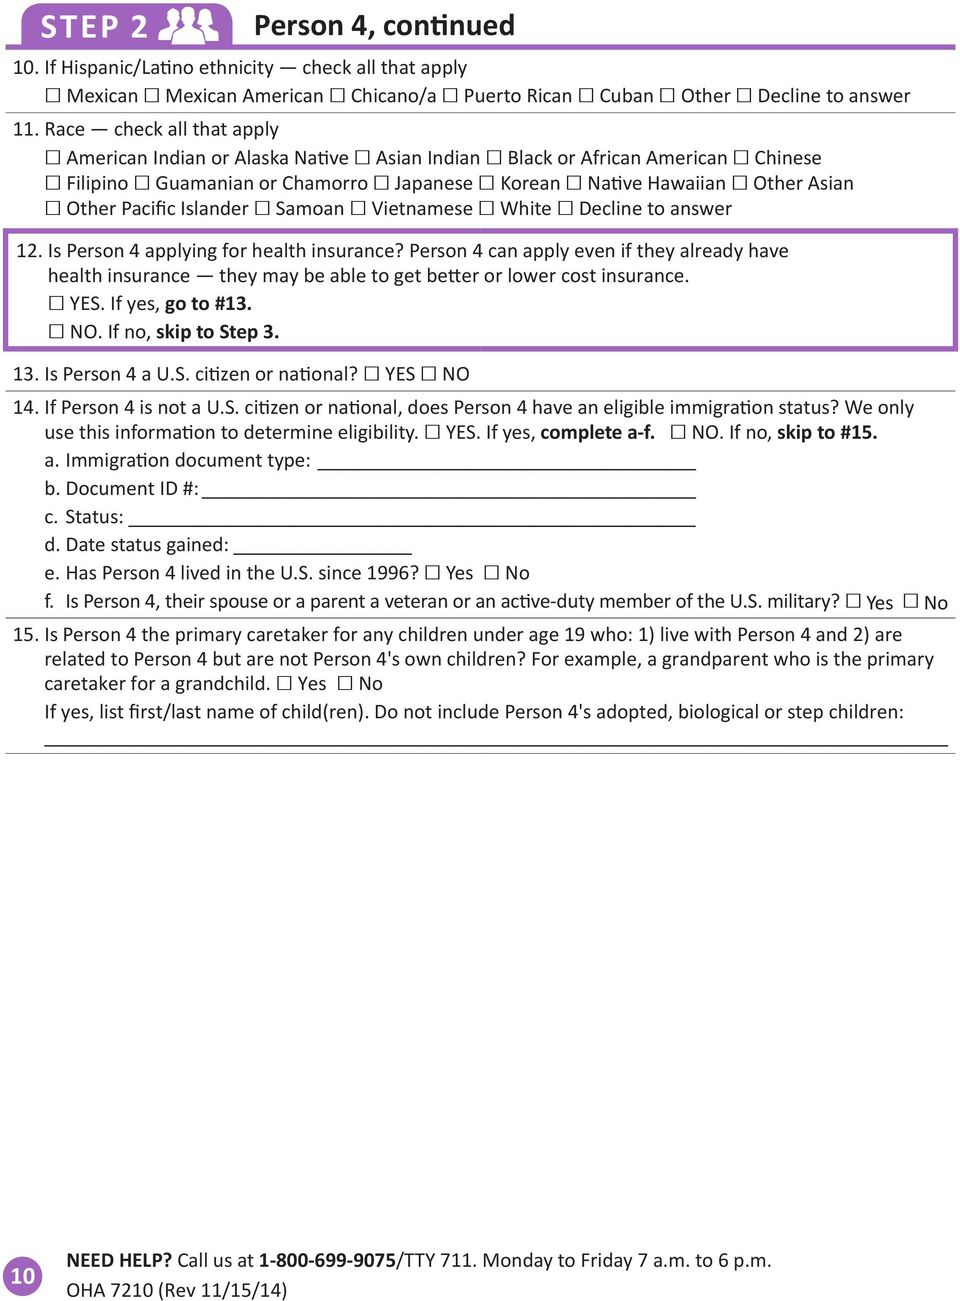 Islander Samoan Vietnamese White Decline to answer 12. Is Person 4 applying for health insurance?